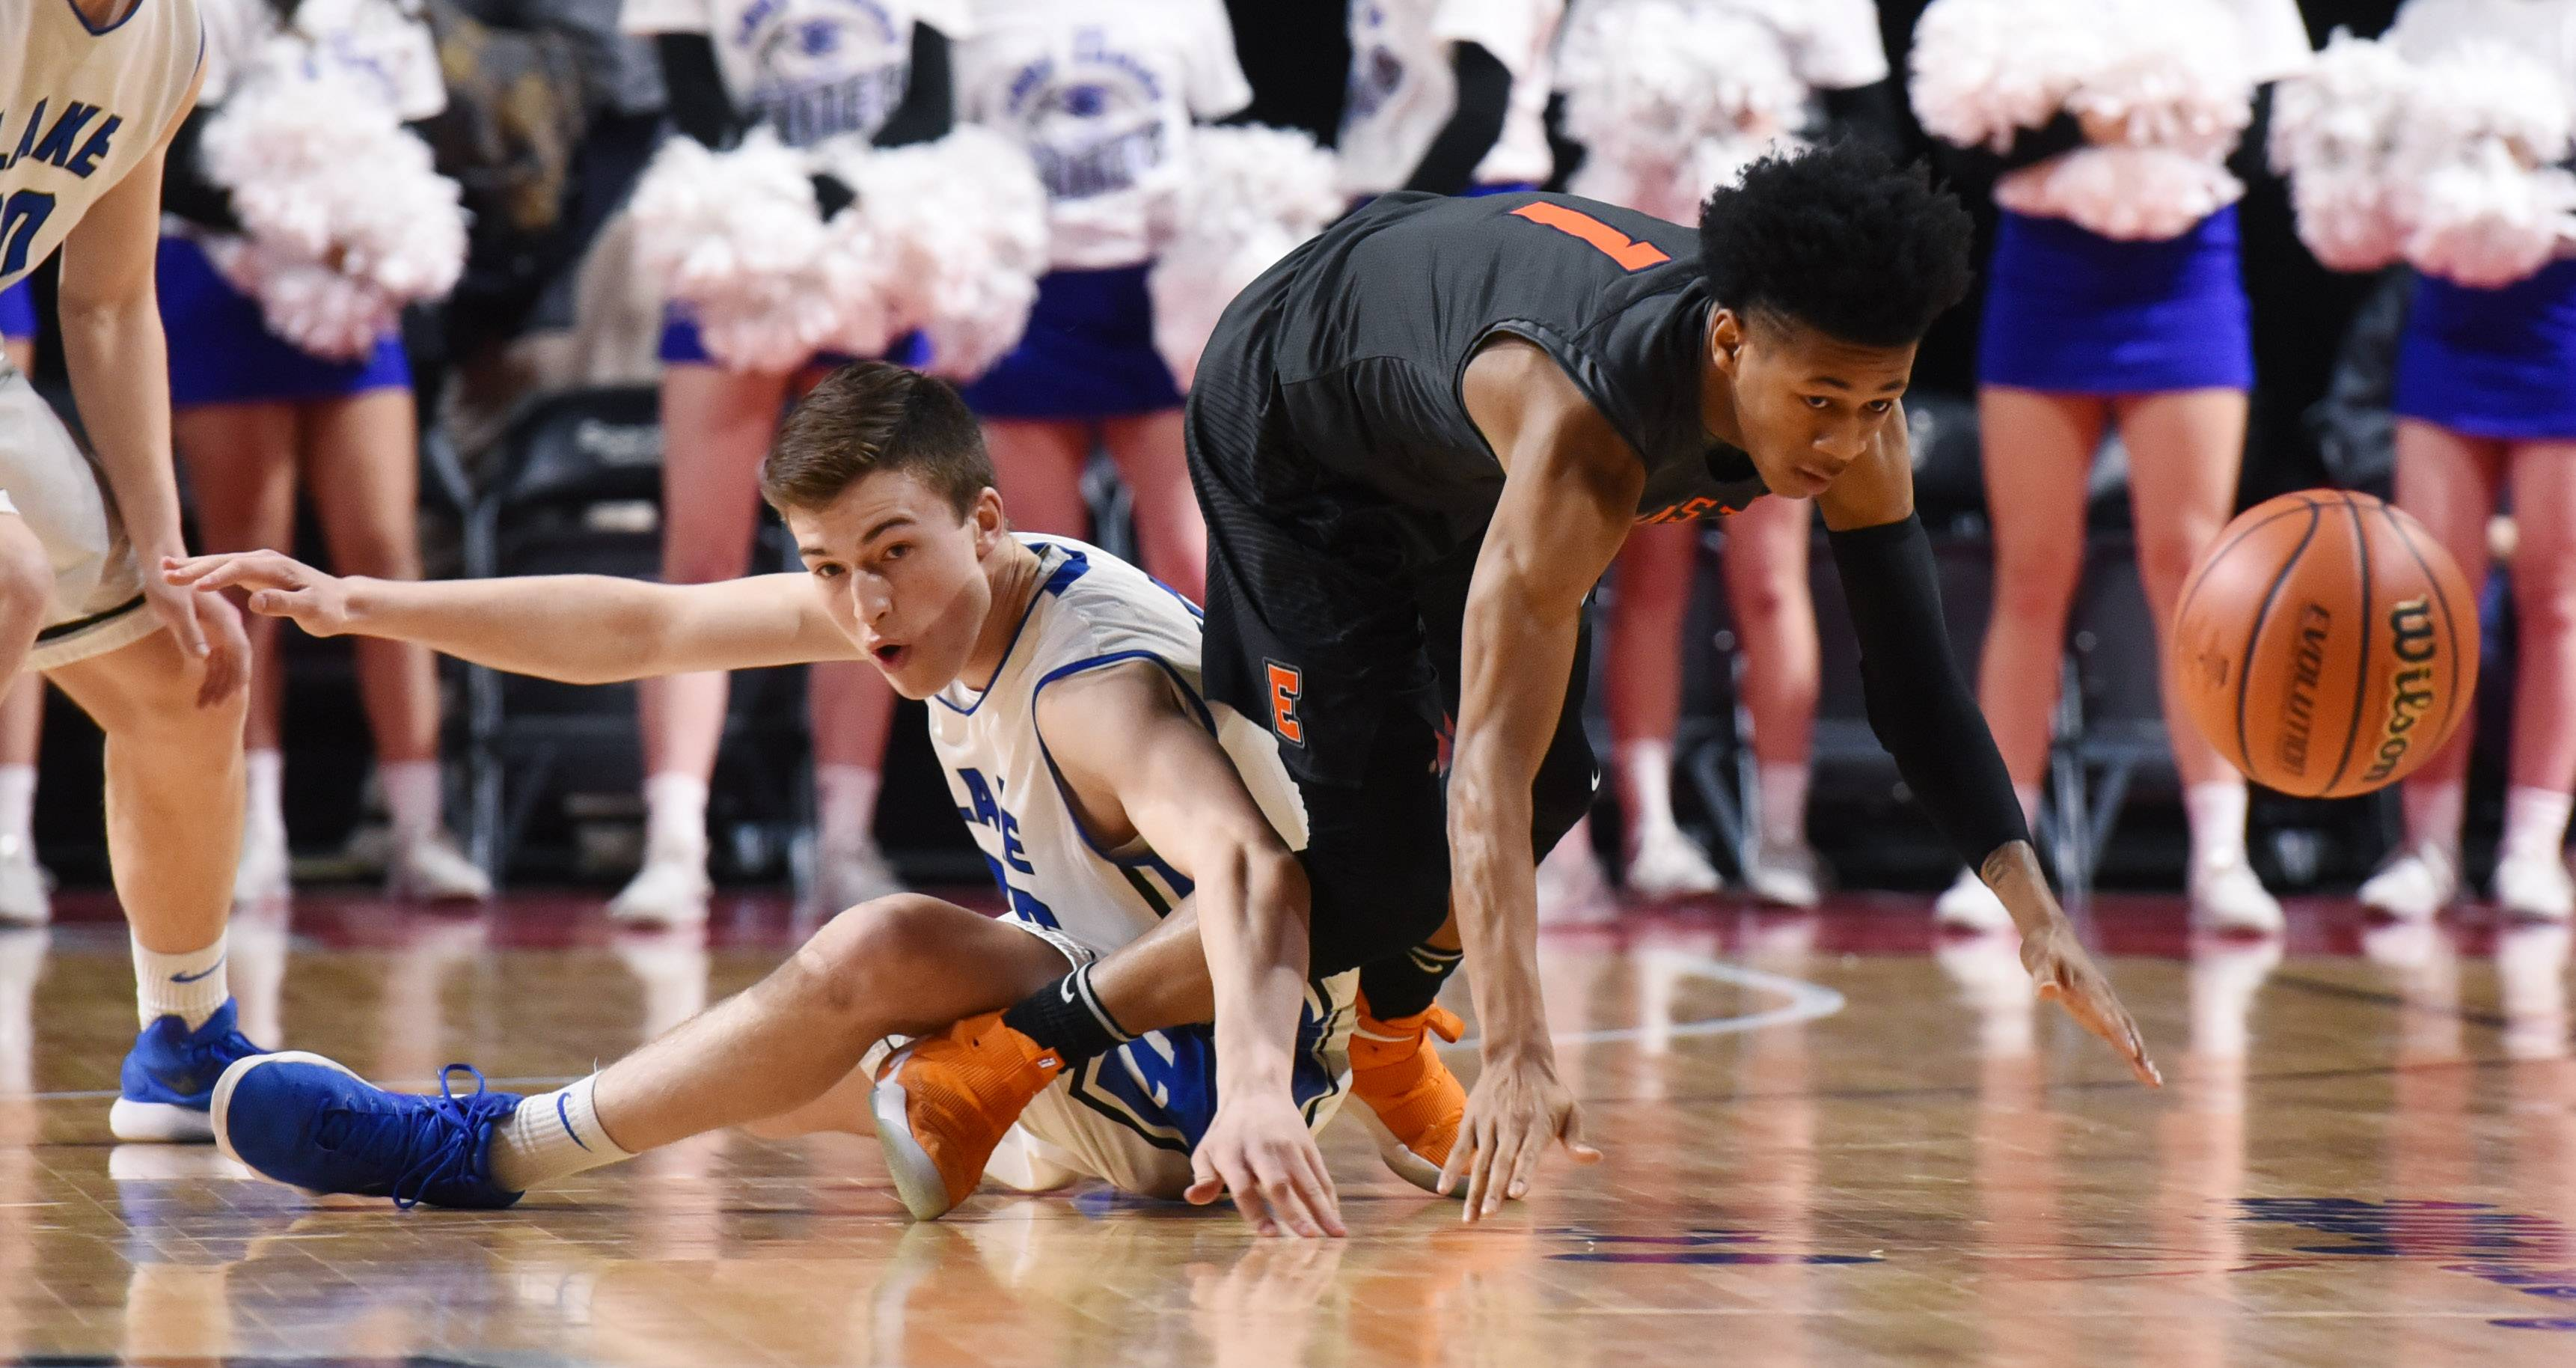 Lake Zurich's Will Tucker, left, tries to get jar the ball loose against Evanston's Jaheim Hiolden during the Class 4A supersectional at the Sears Centre in Hoffman Estates on Tuesday.